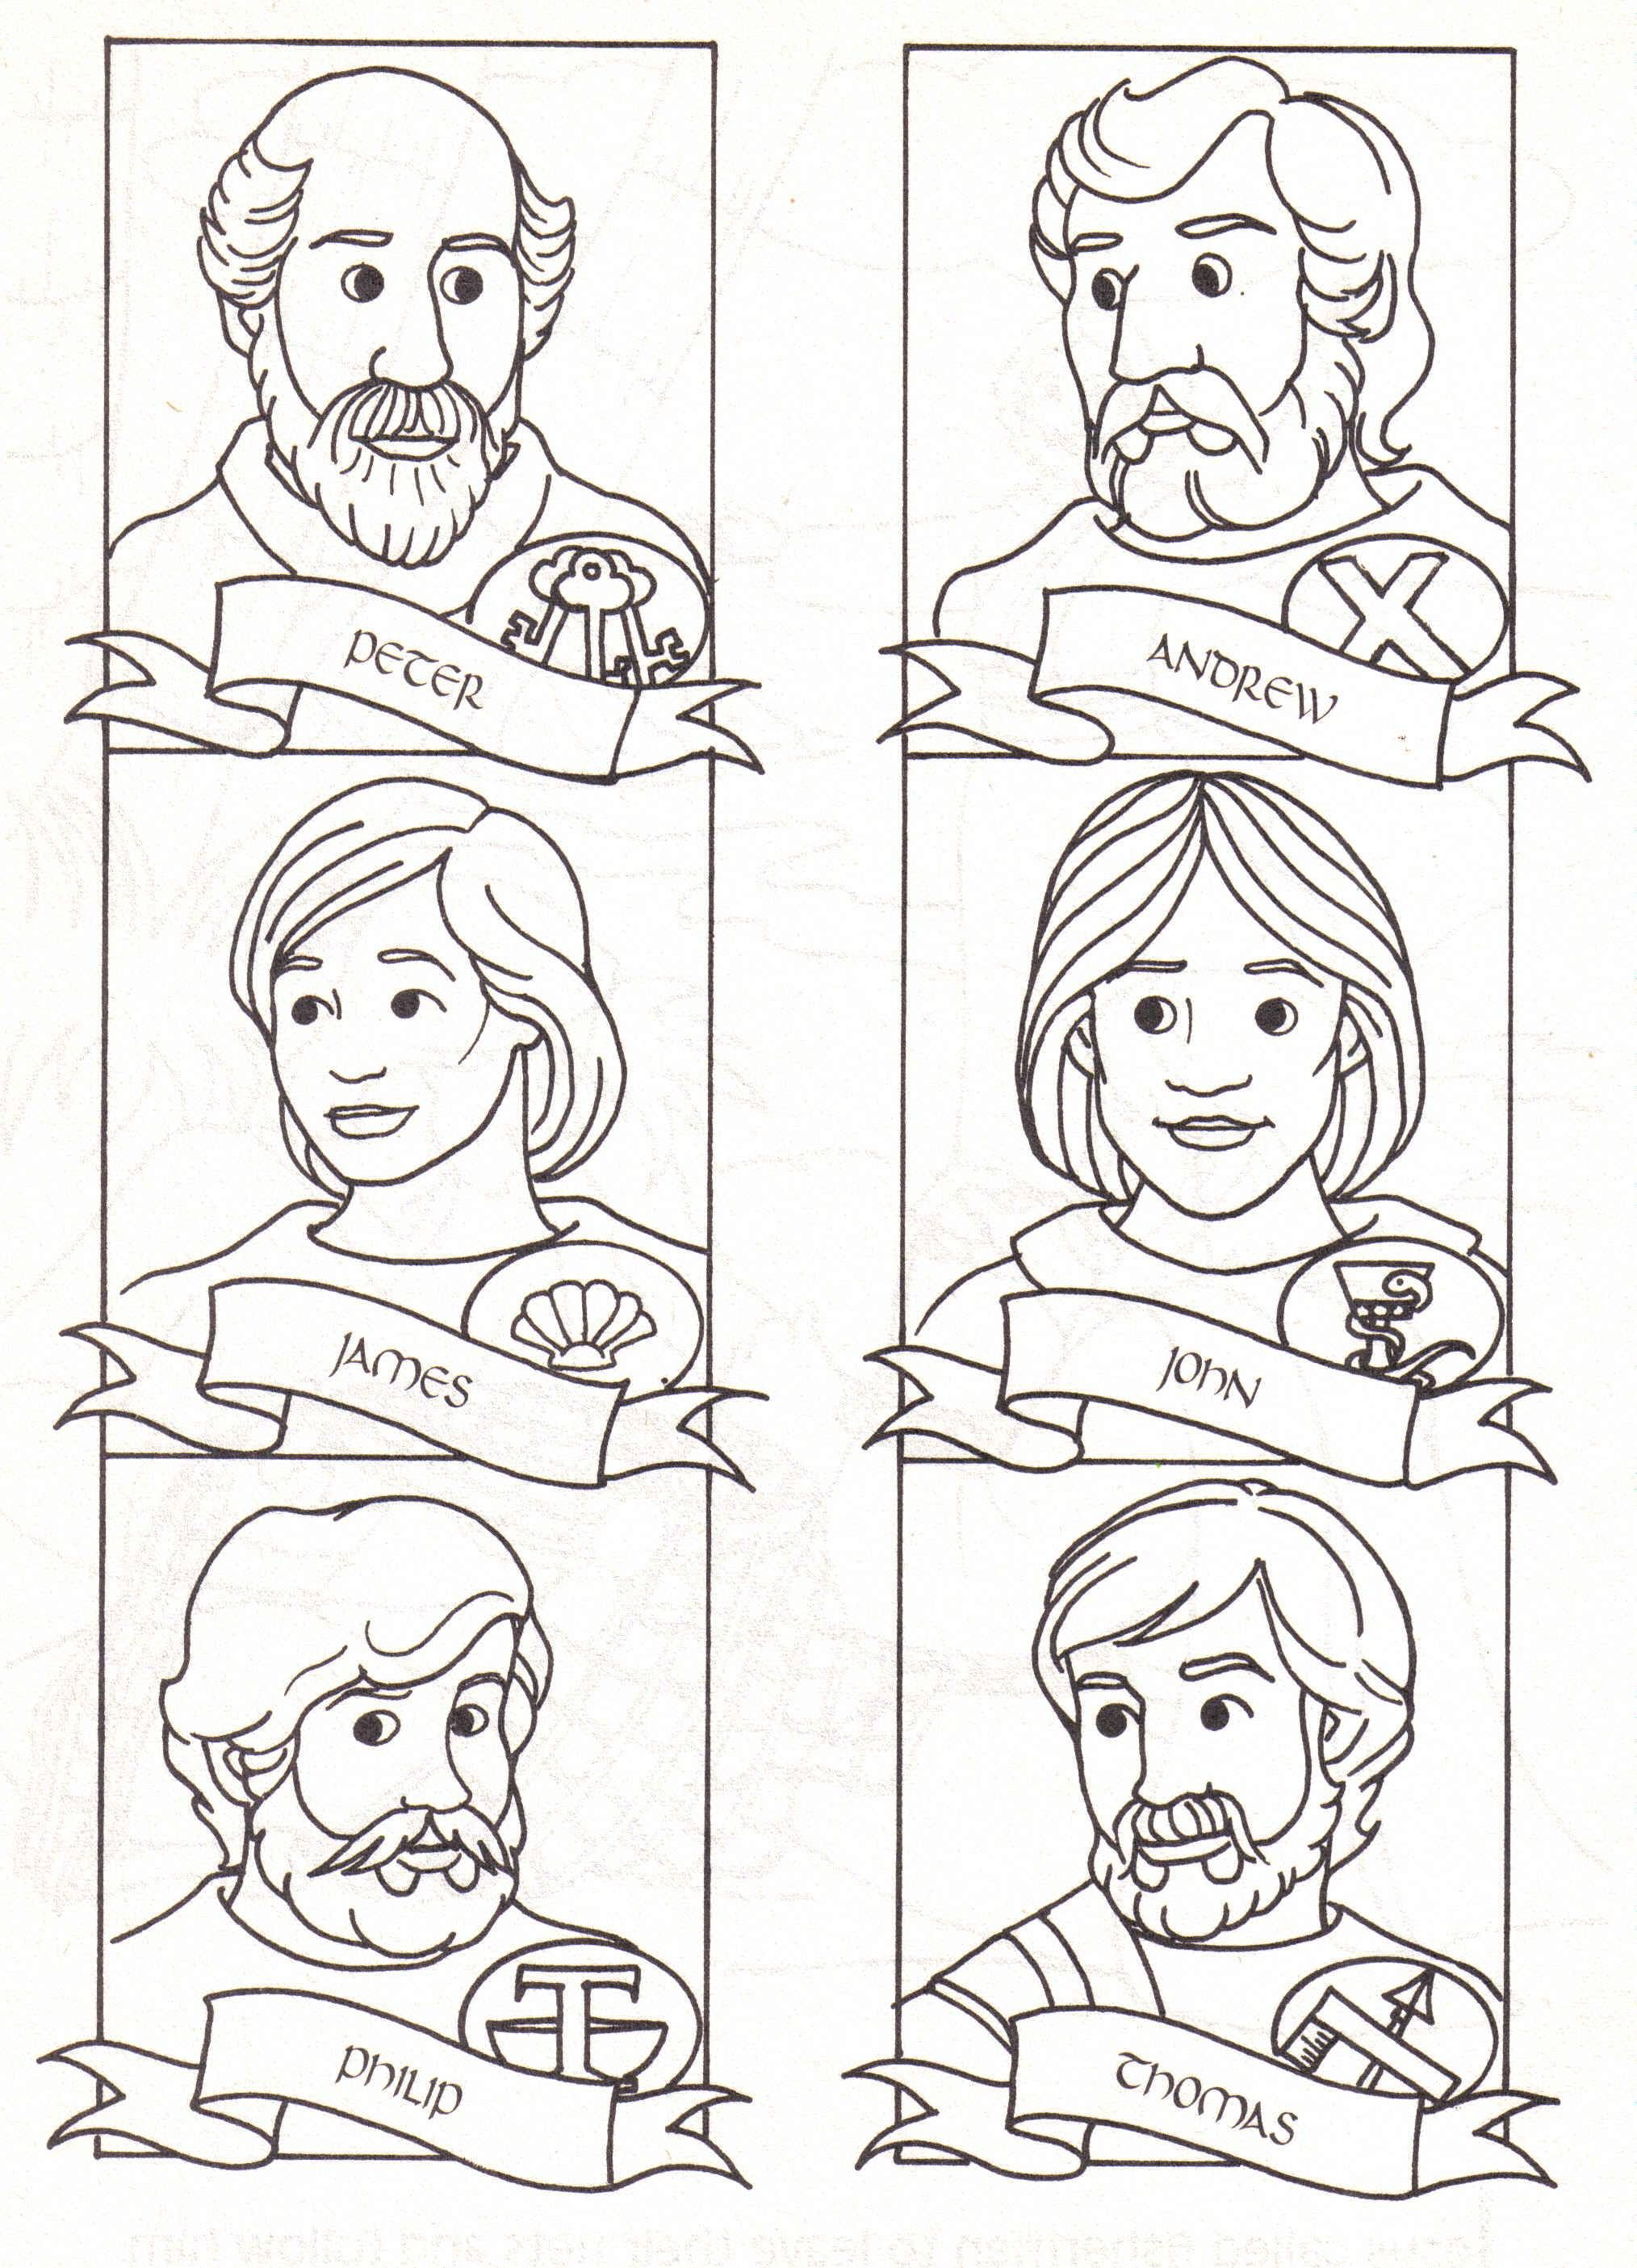 12 Disciples Coloring Page Download I Was Thinking About